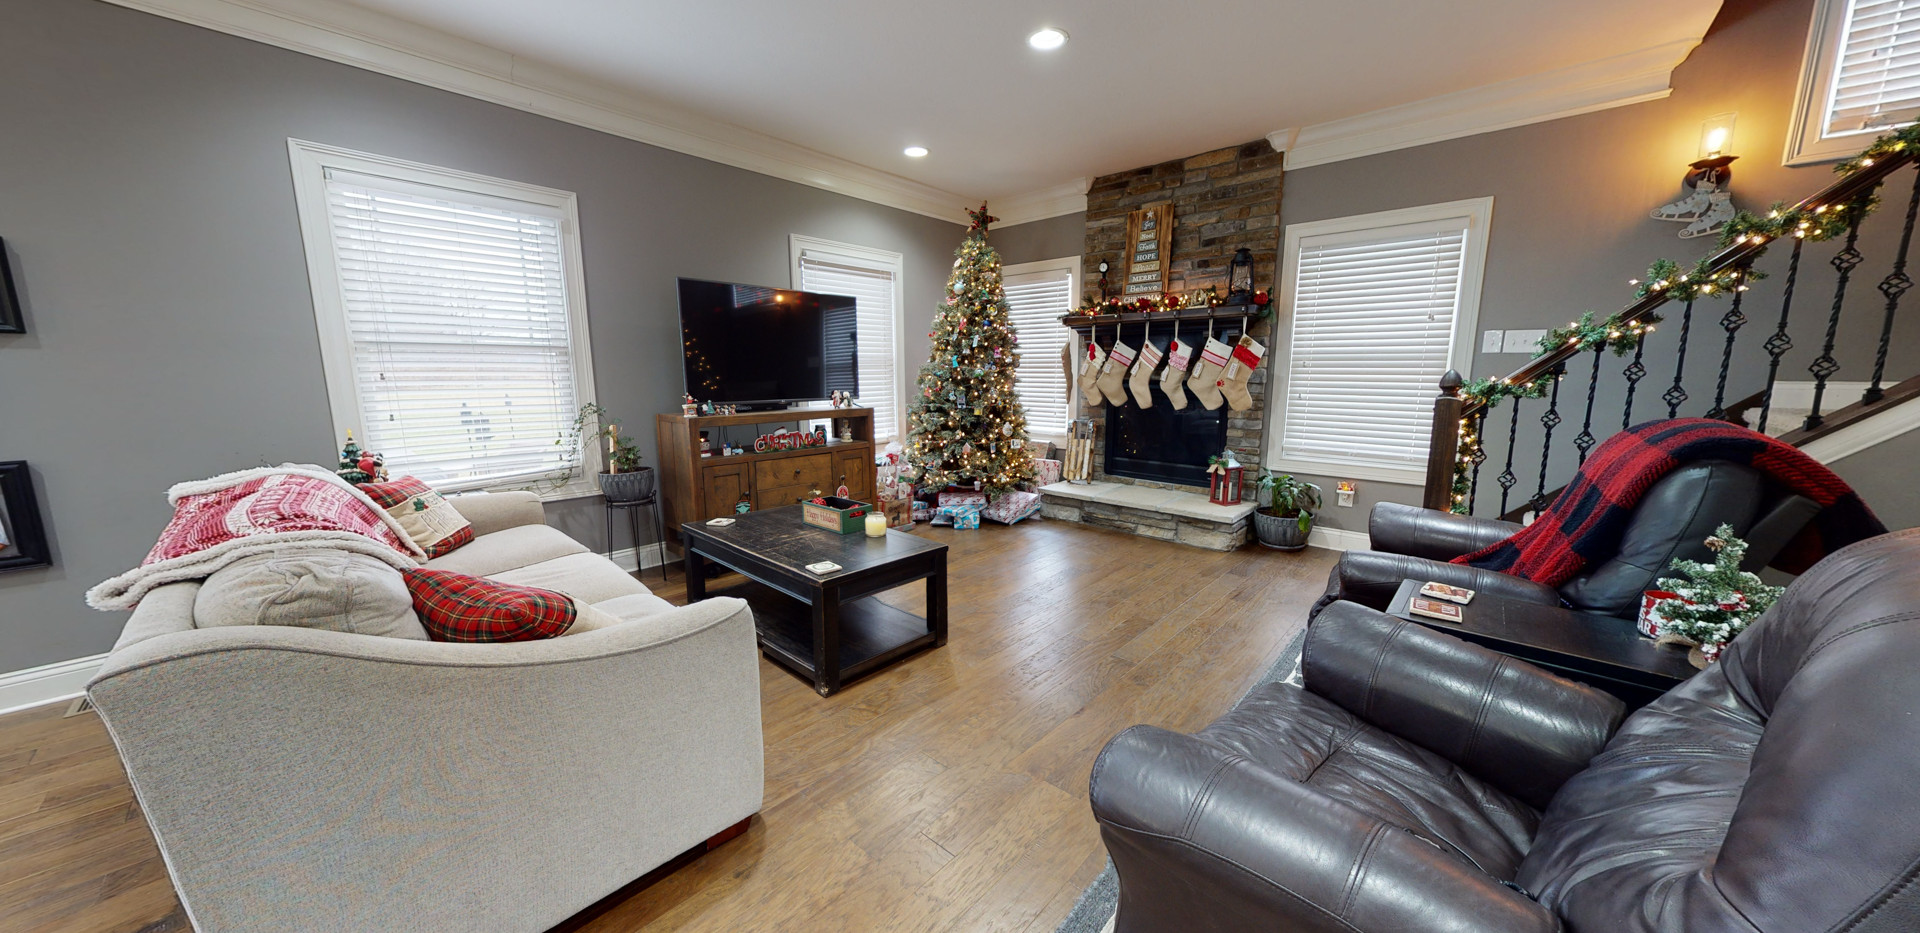 Cozy livingroom with christmas decorations including stockings hung on stone fireplace, tv, black chairs, and a white couch